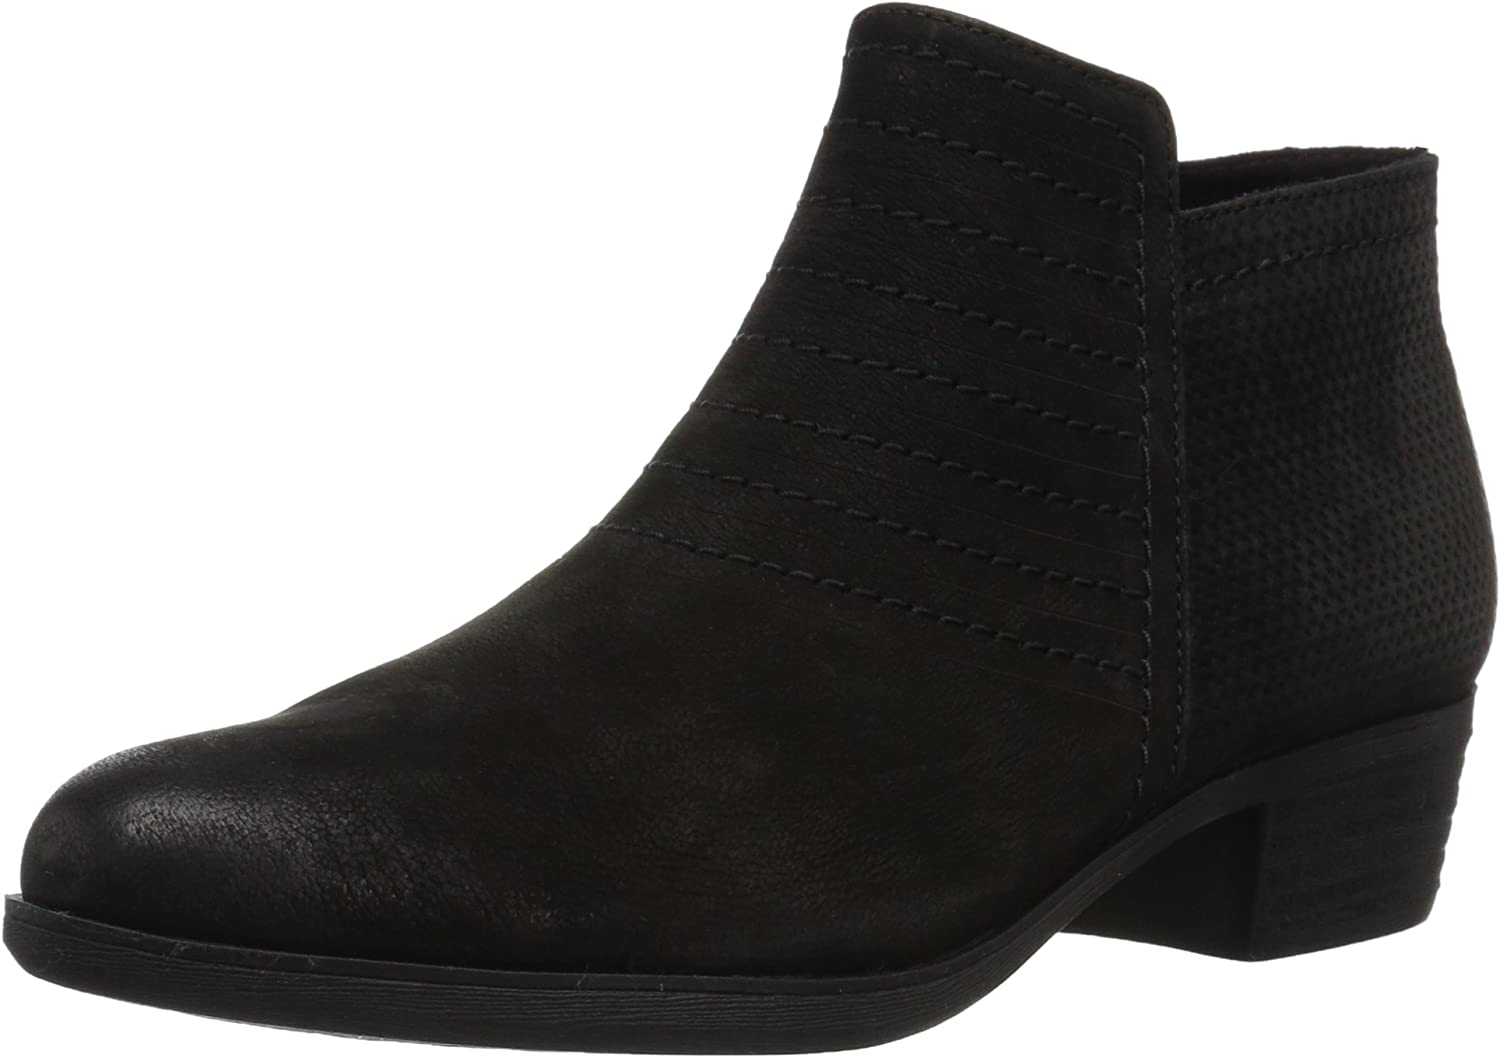 Rockport Womens Vanna Strappy Ankle Bootie